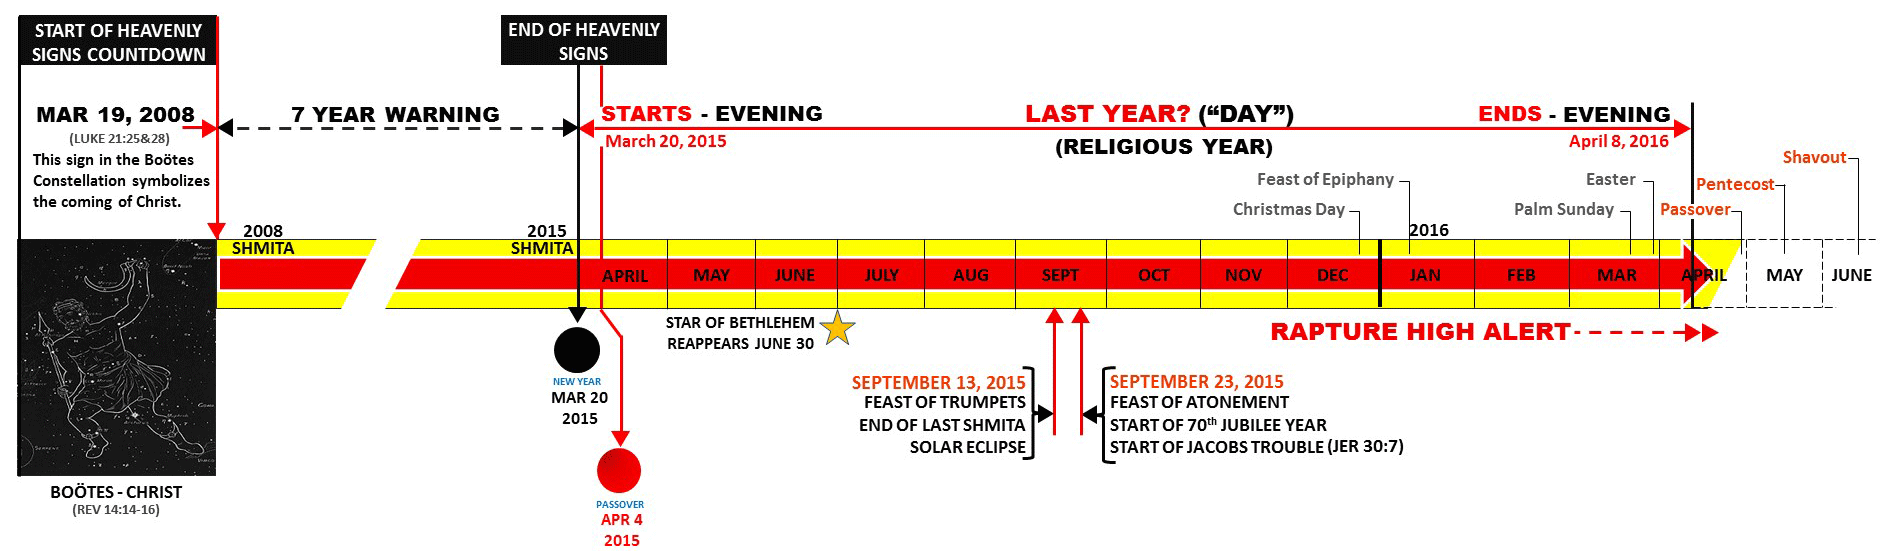 THE LAST YEAR TIMELINE CHART